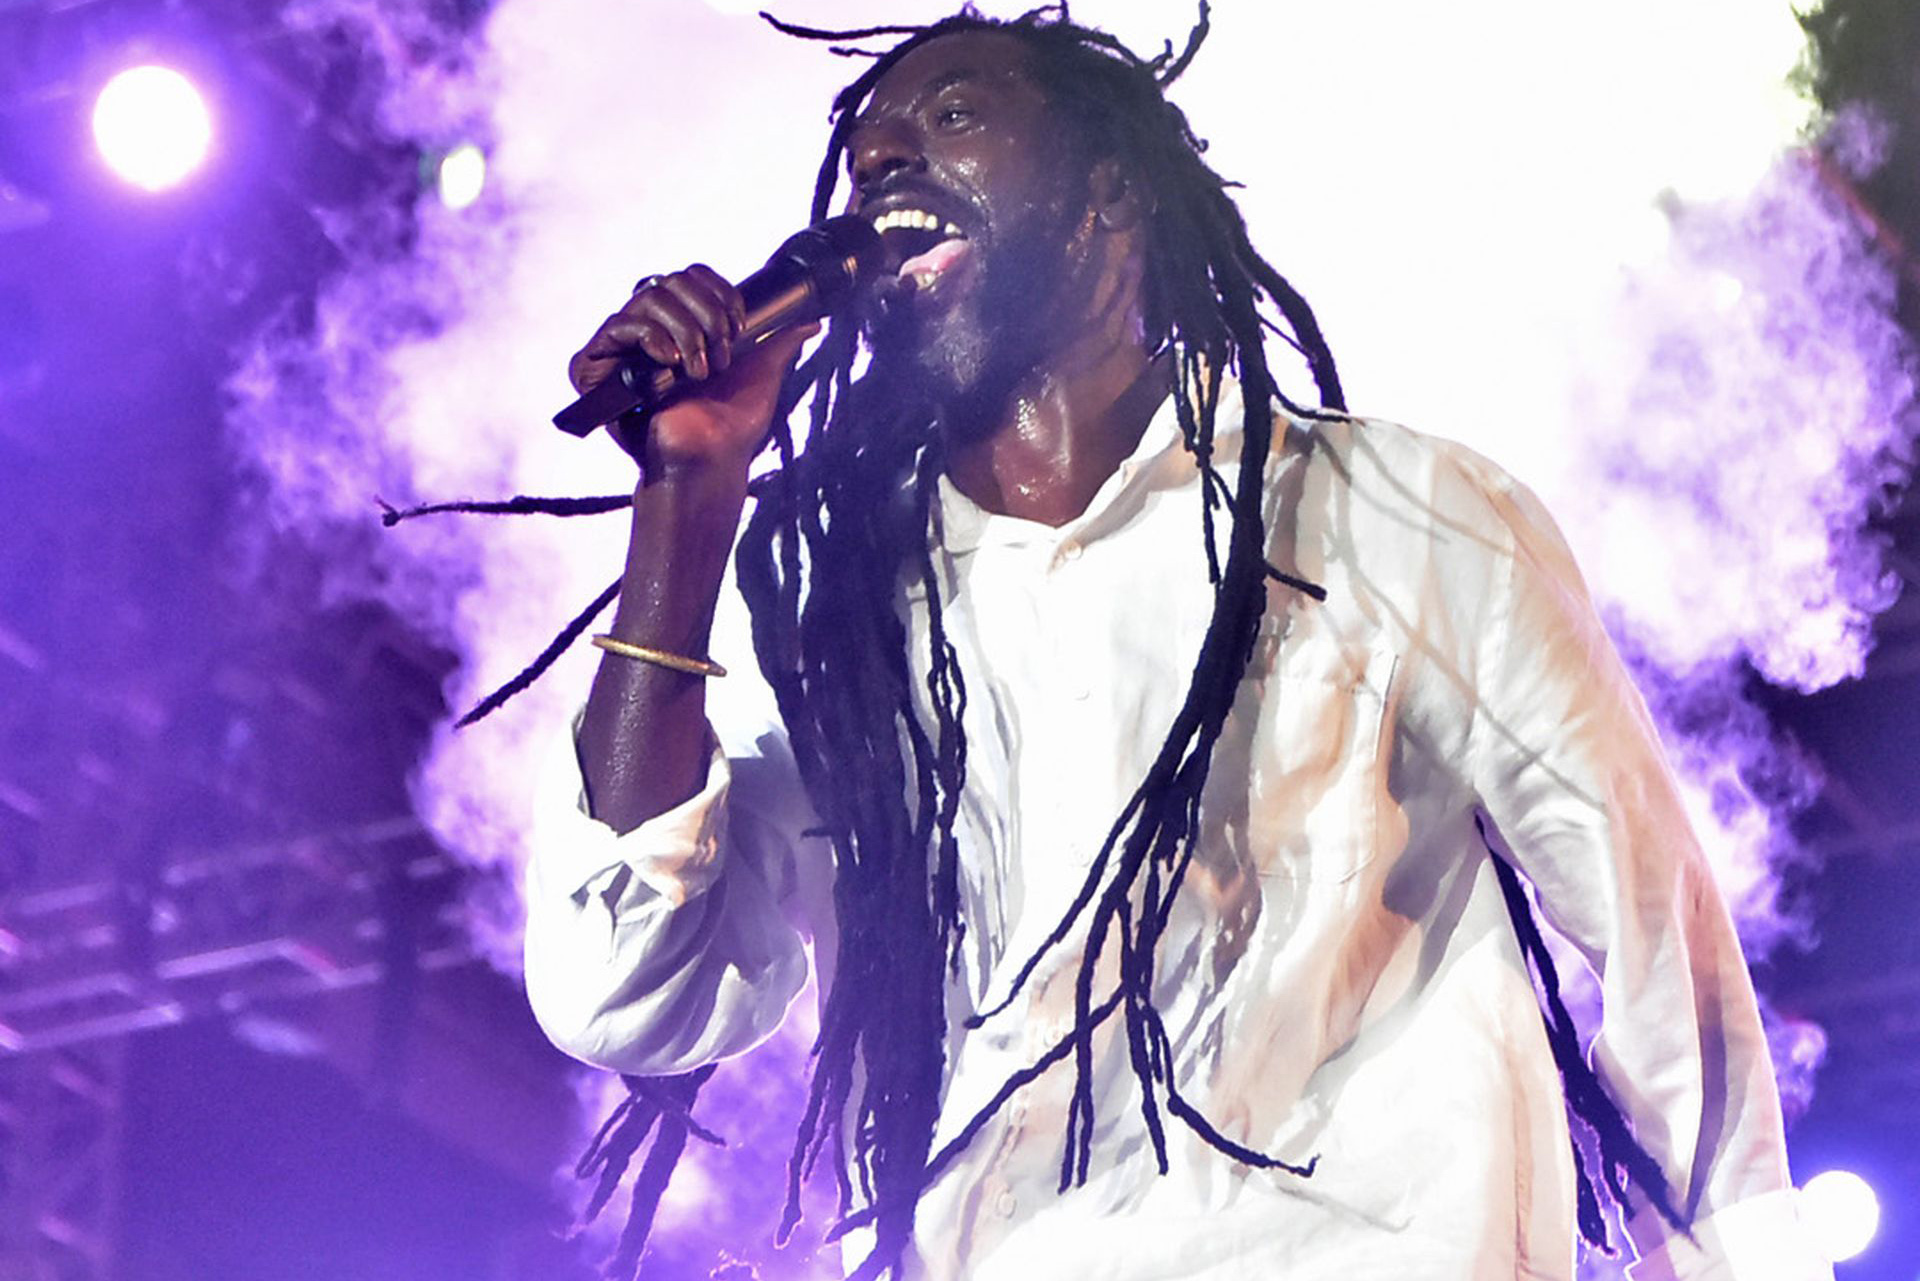 Jamaican reggae star Buju Banton to release new album - Stabroek News